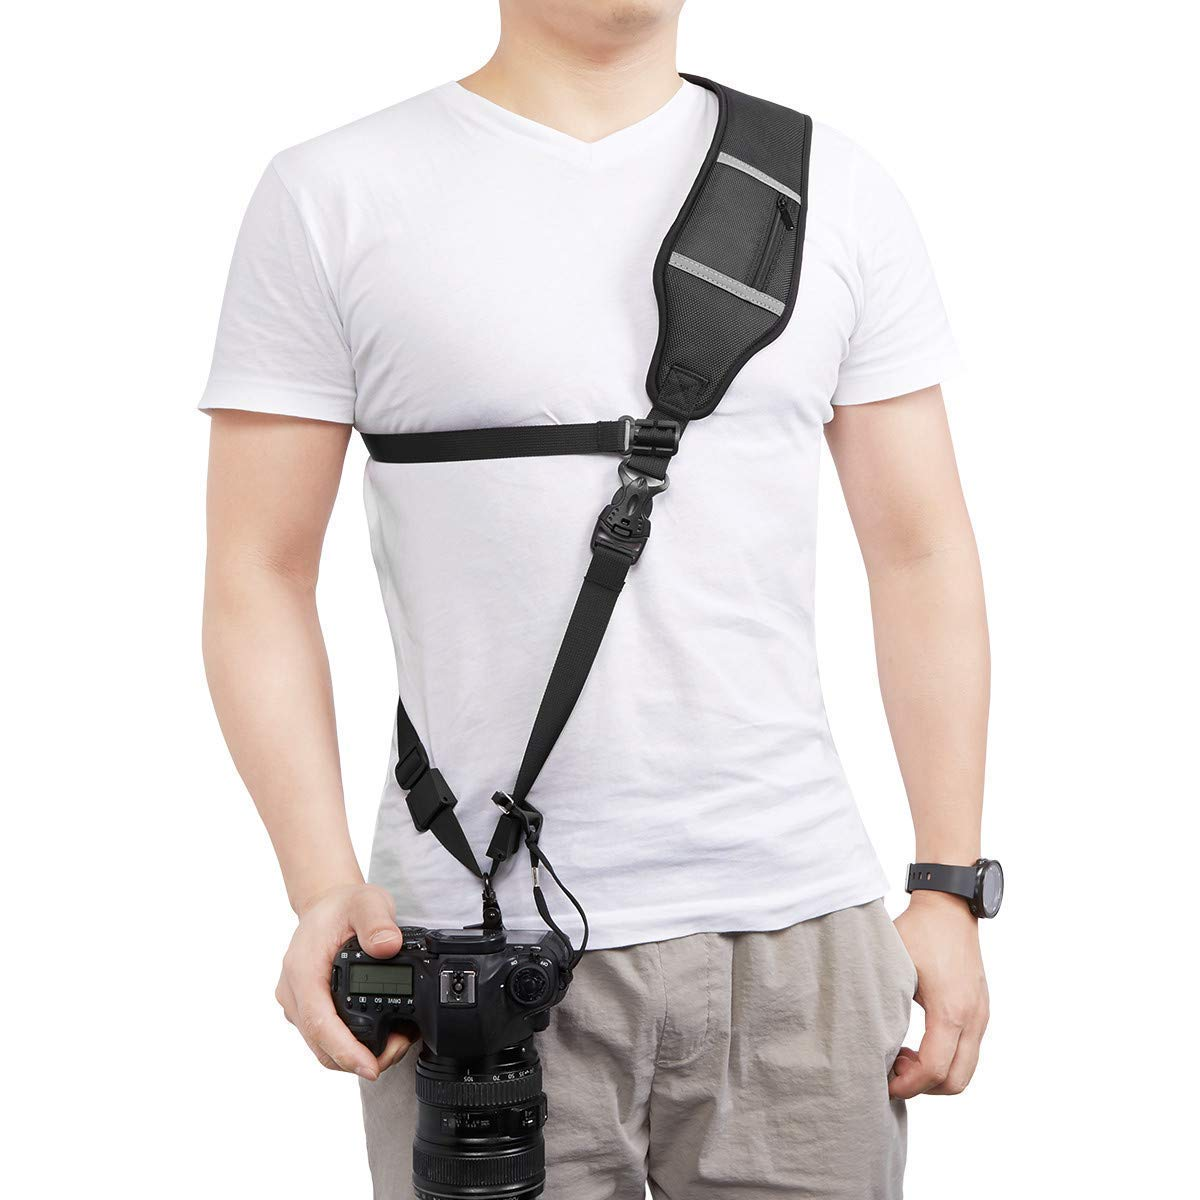 Powerextra Camera Shoulder Neck Strap with Quick Release and Safety Tether Compatible with Canon Nikon Sony Olympus Pentax, fujifilm, Panasonic Canon SLR DSLR